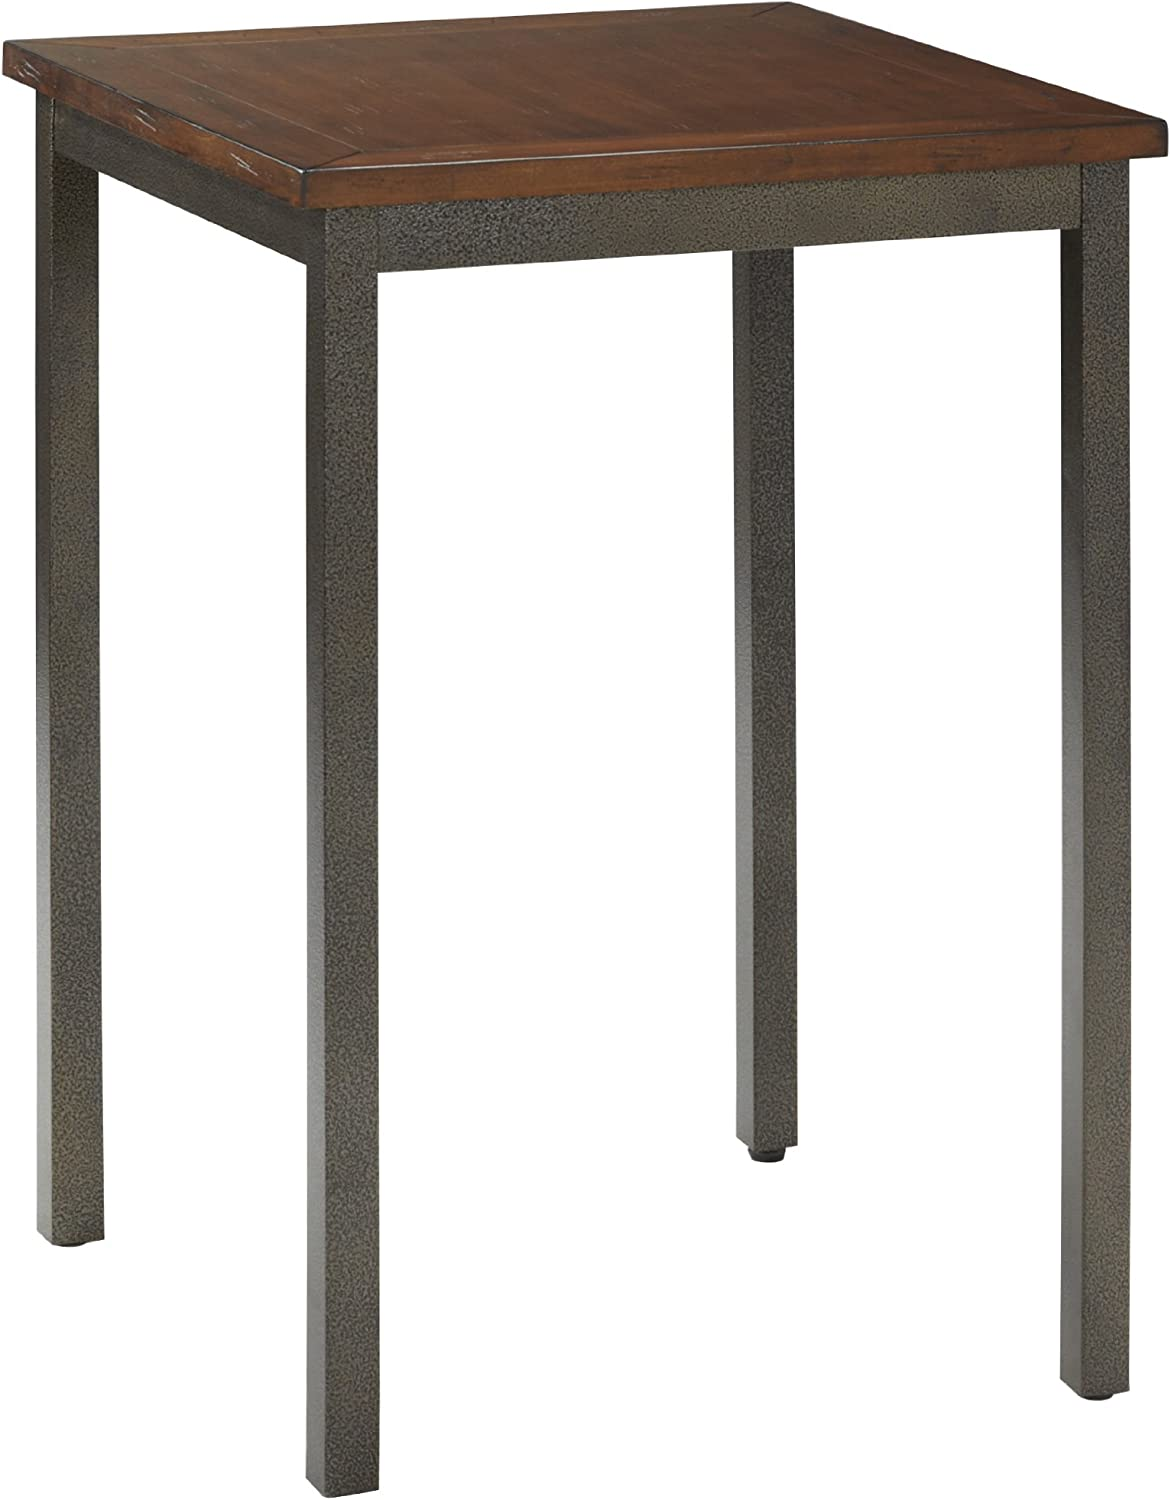 Cabin Creek Chestnut Bistro Table by Home Styles